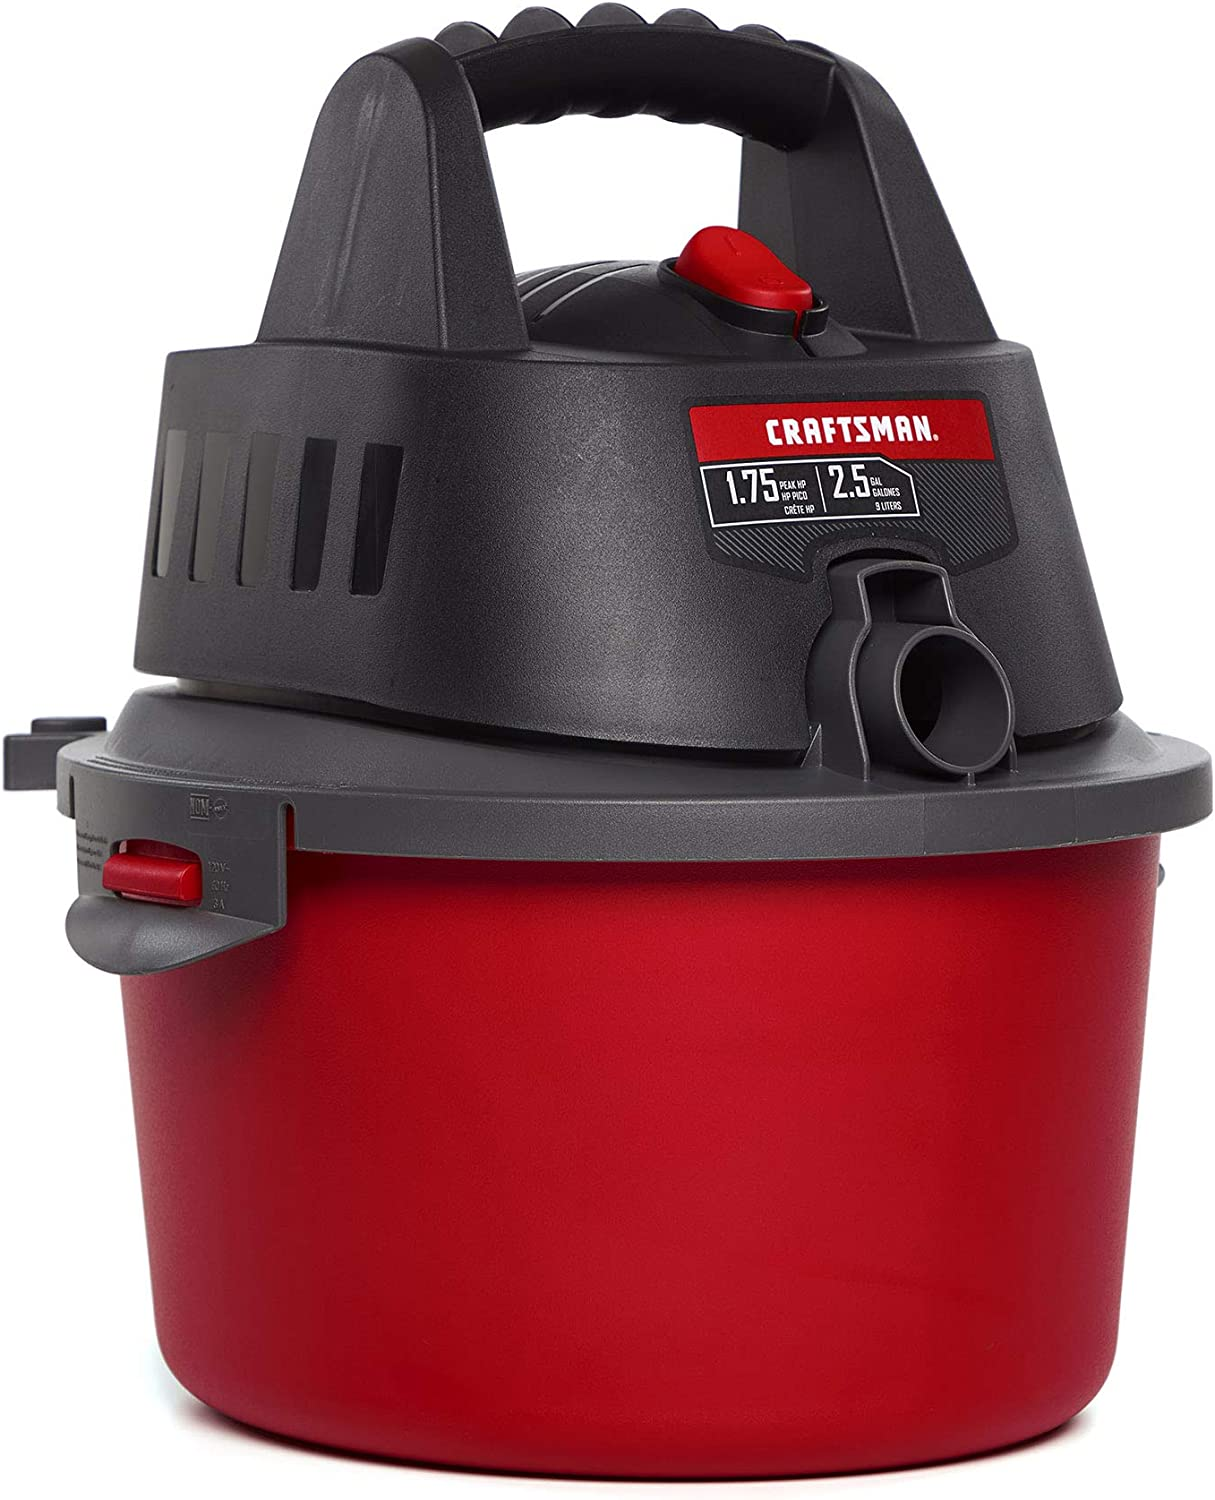 CRAFTSMAN CMXEVBE17250 2.5 gallon 1.75 Peak Hp Wet Dry Vac, Portable Shop Vacuum with Attachments